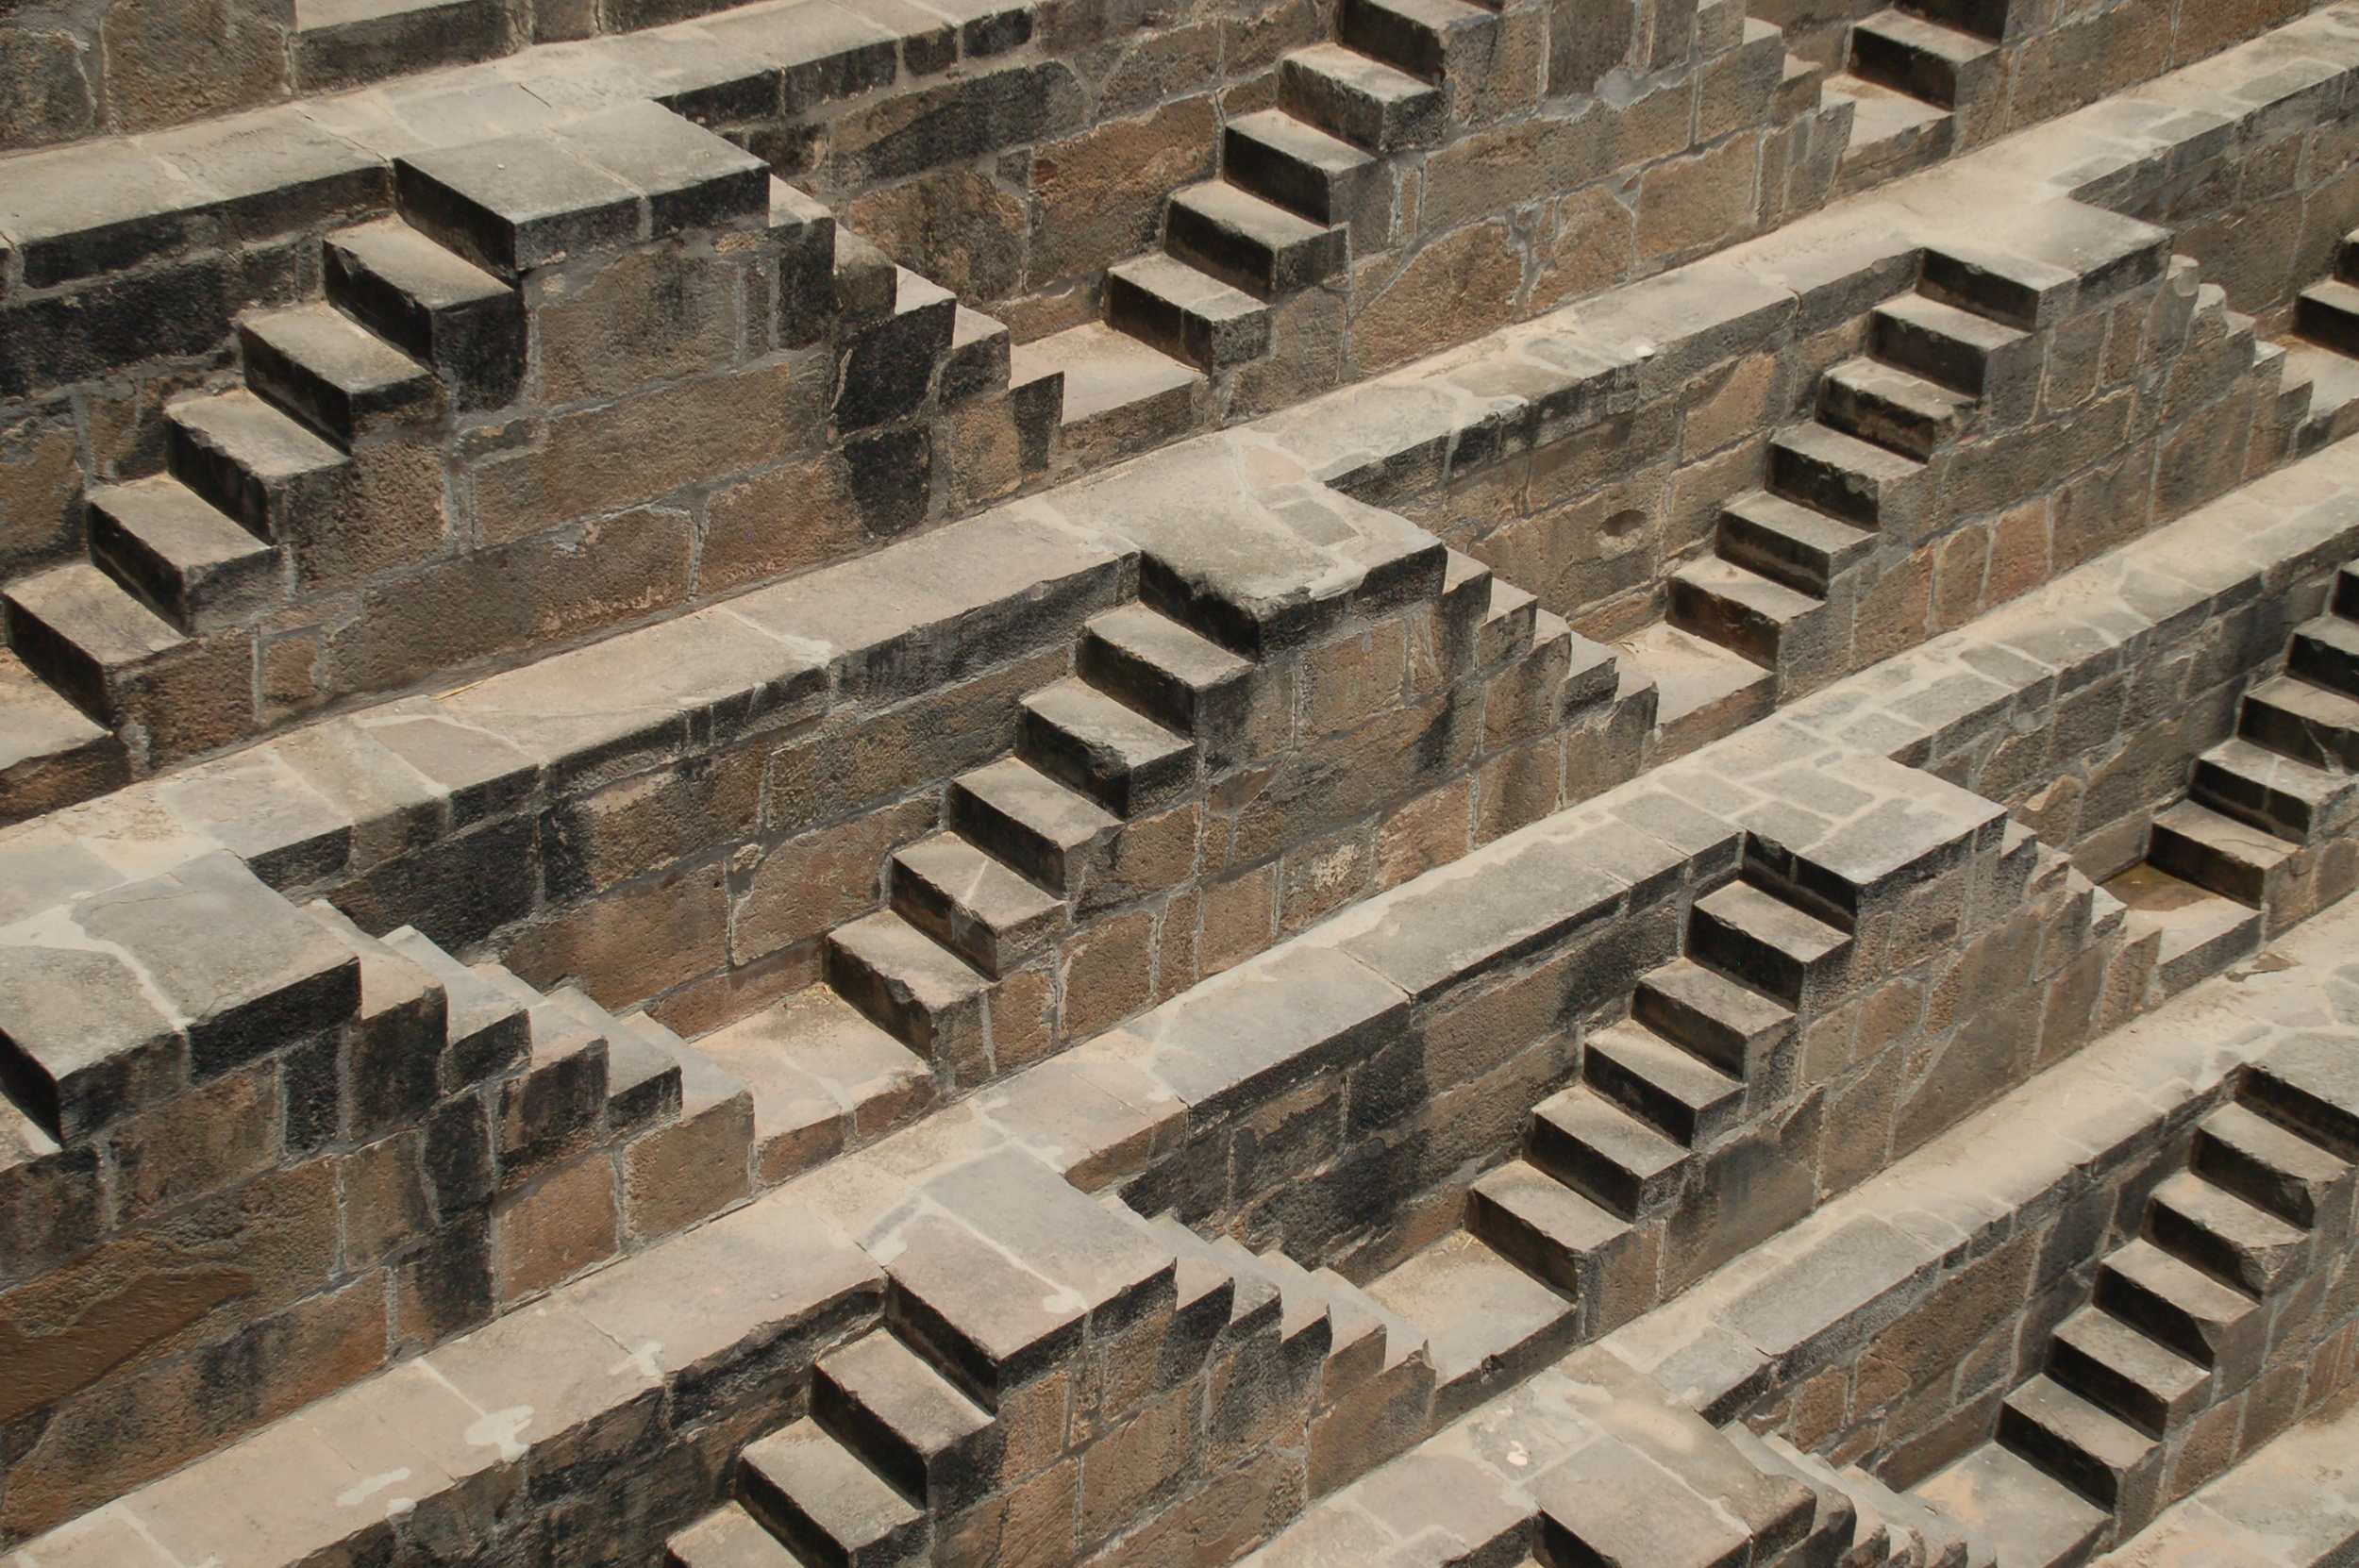 The Step Well in Abhaneri